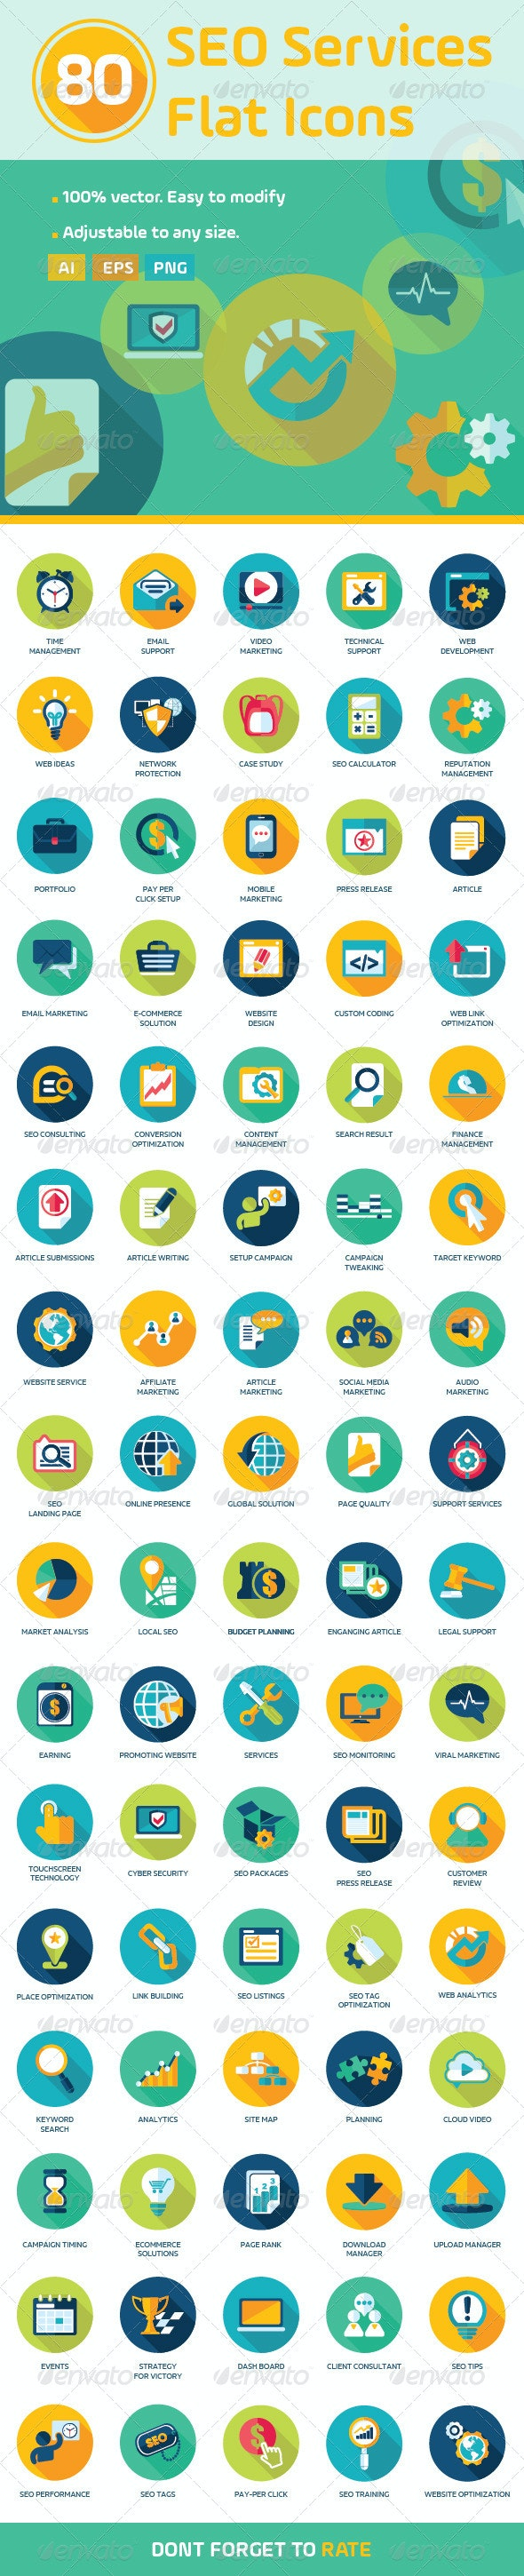 80 Flat SEO Services Icons